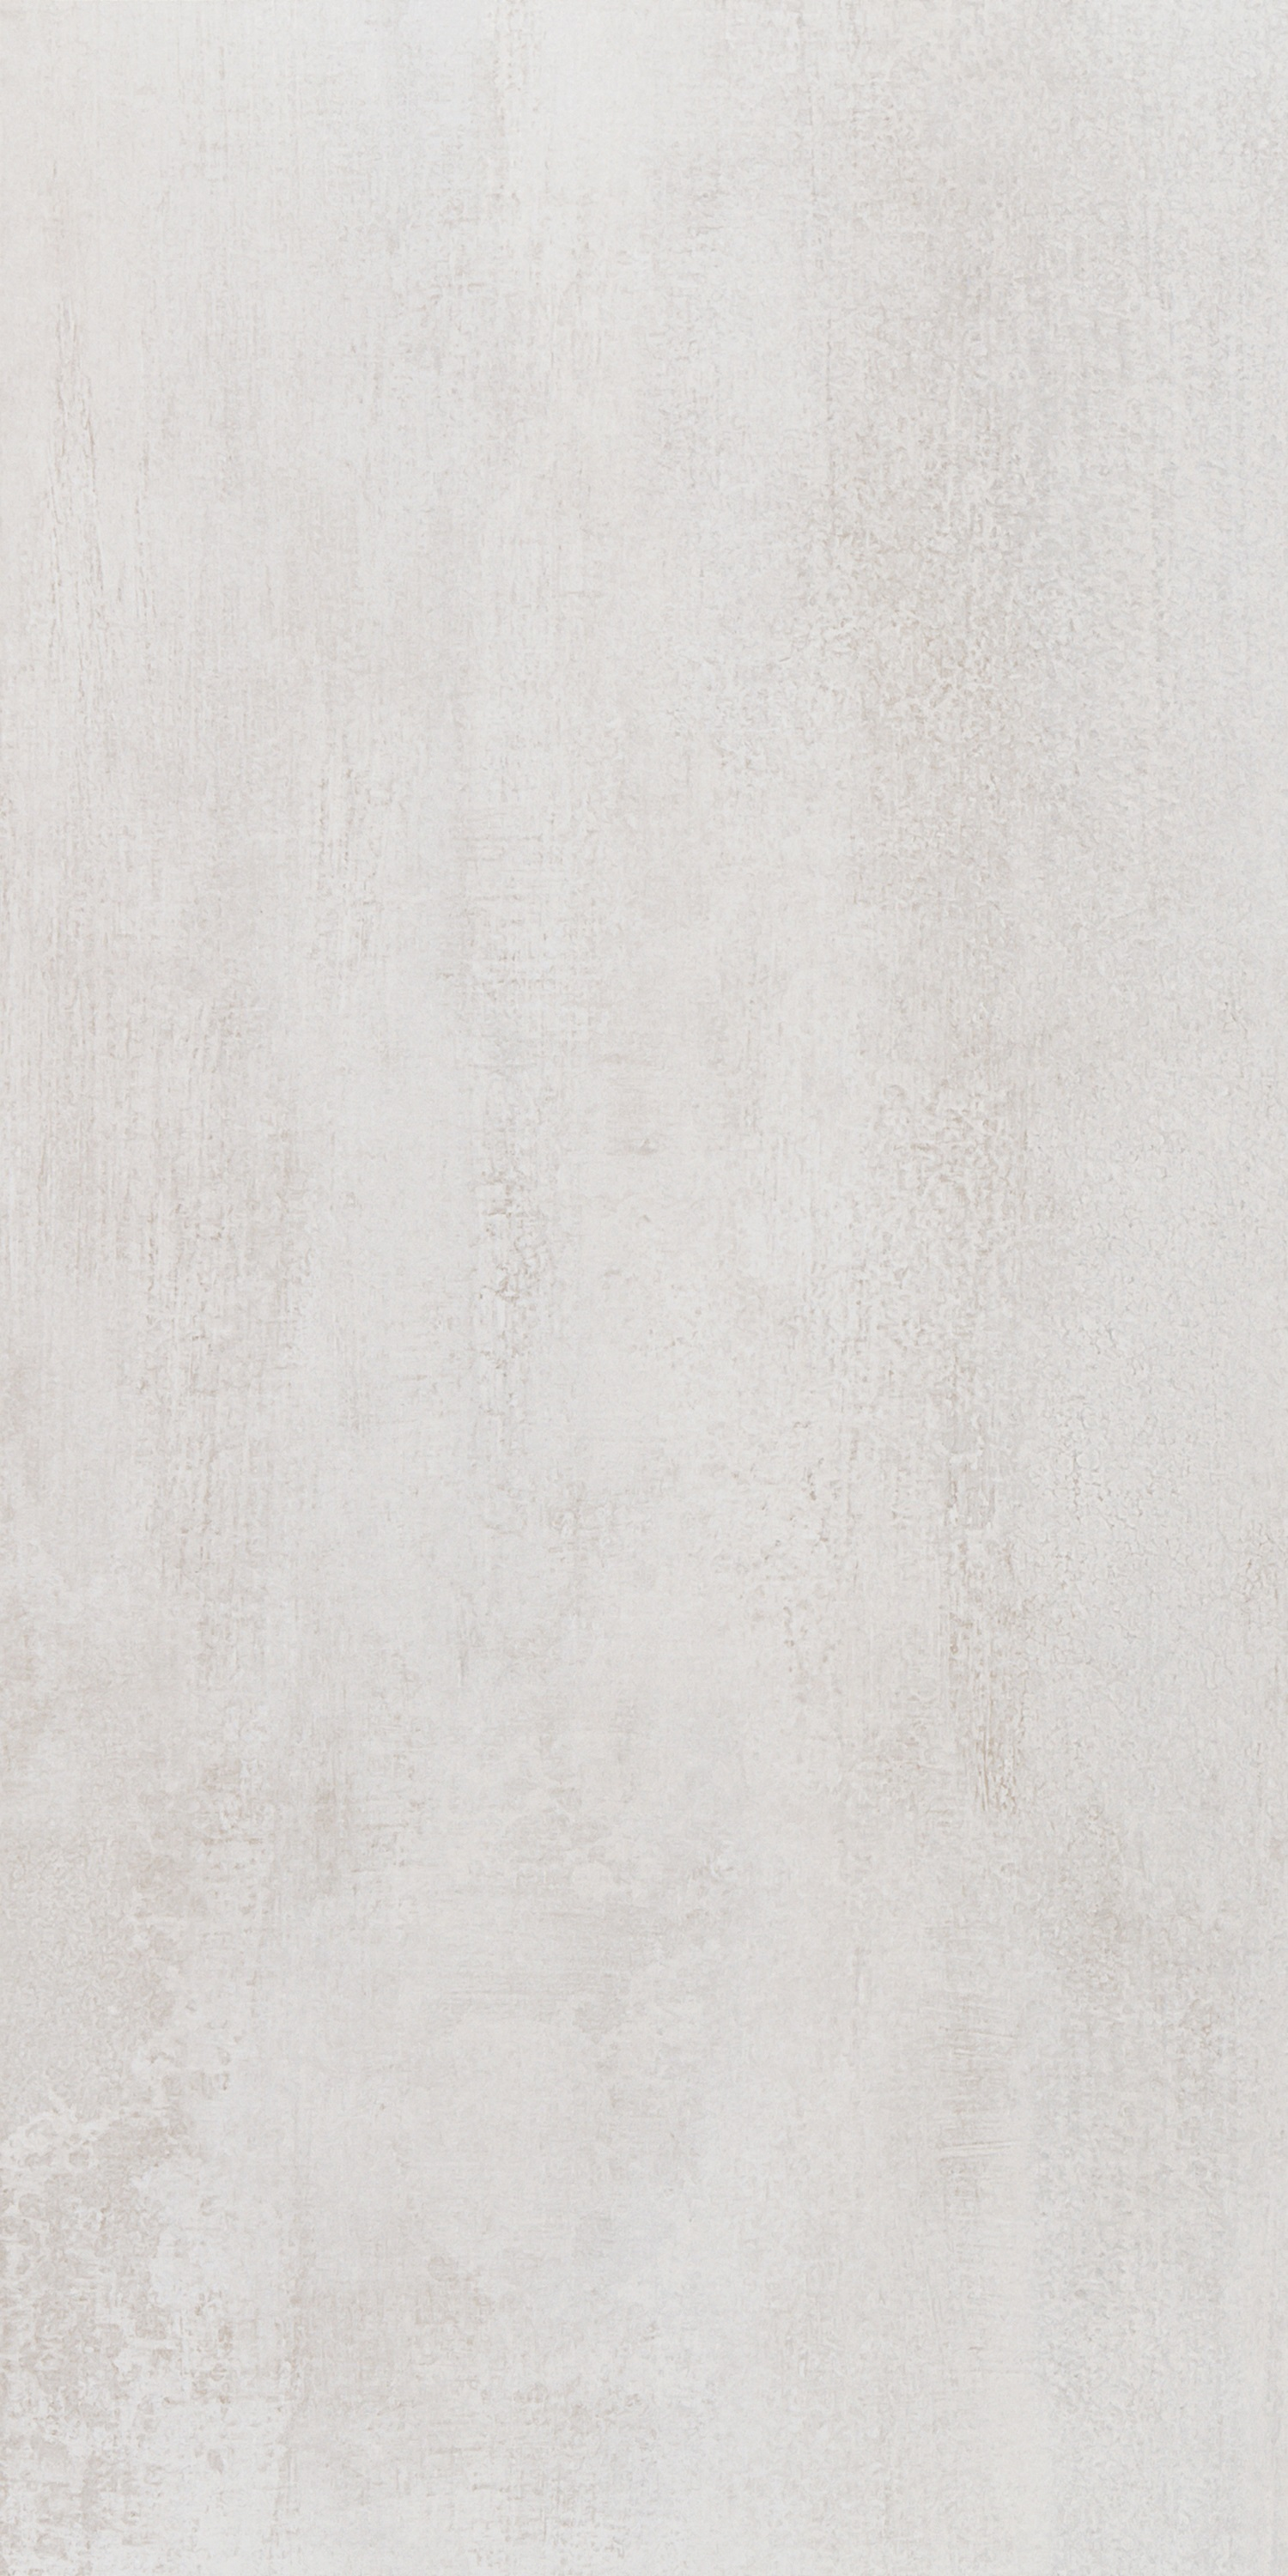 Contempo White 12 X 24 RECTIFIED EDGE